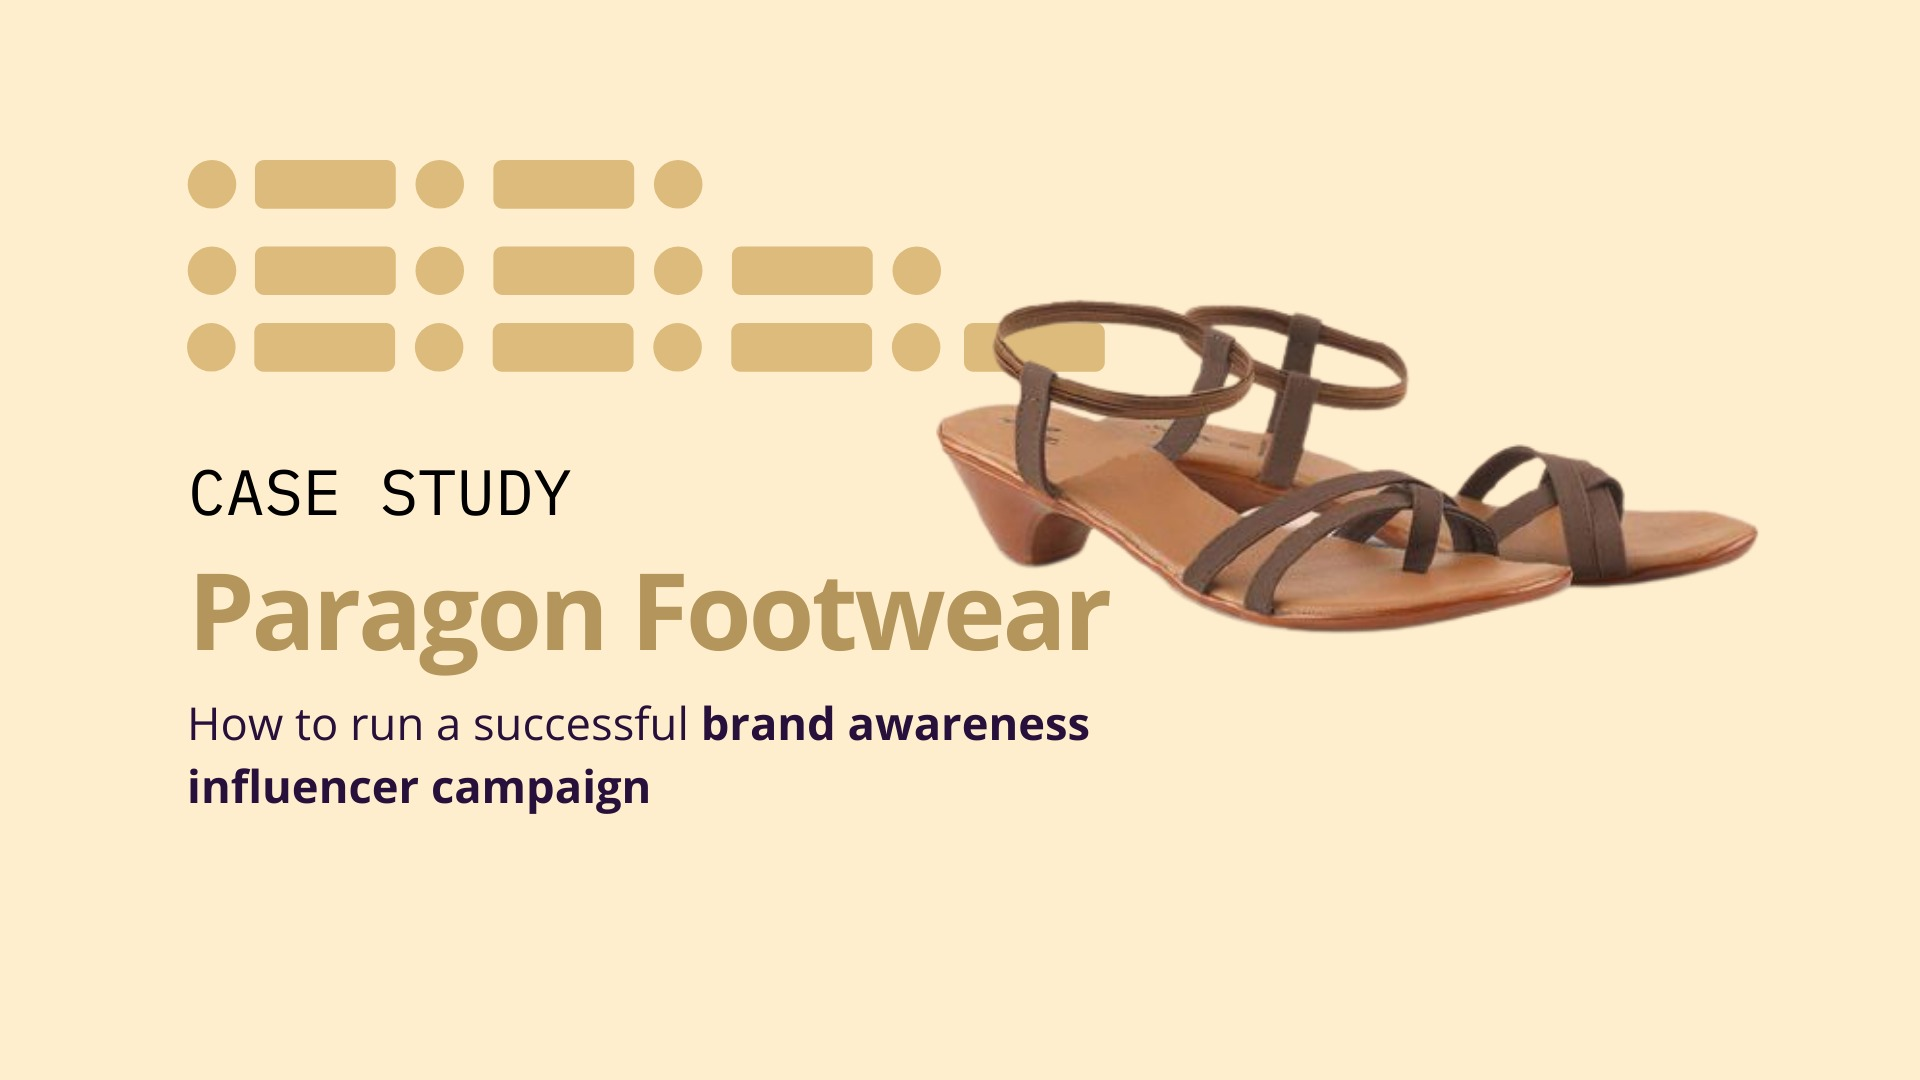 Paragon Footwear: How to run a successful brand awareness influencer campaign image